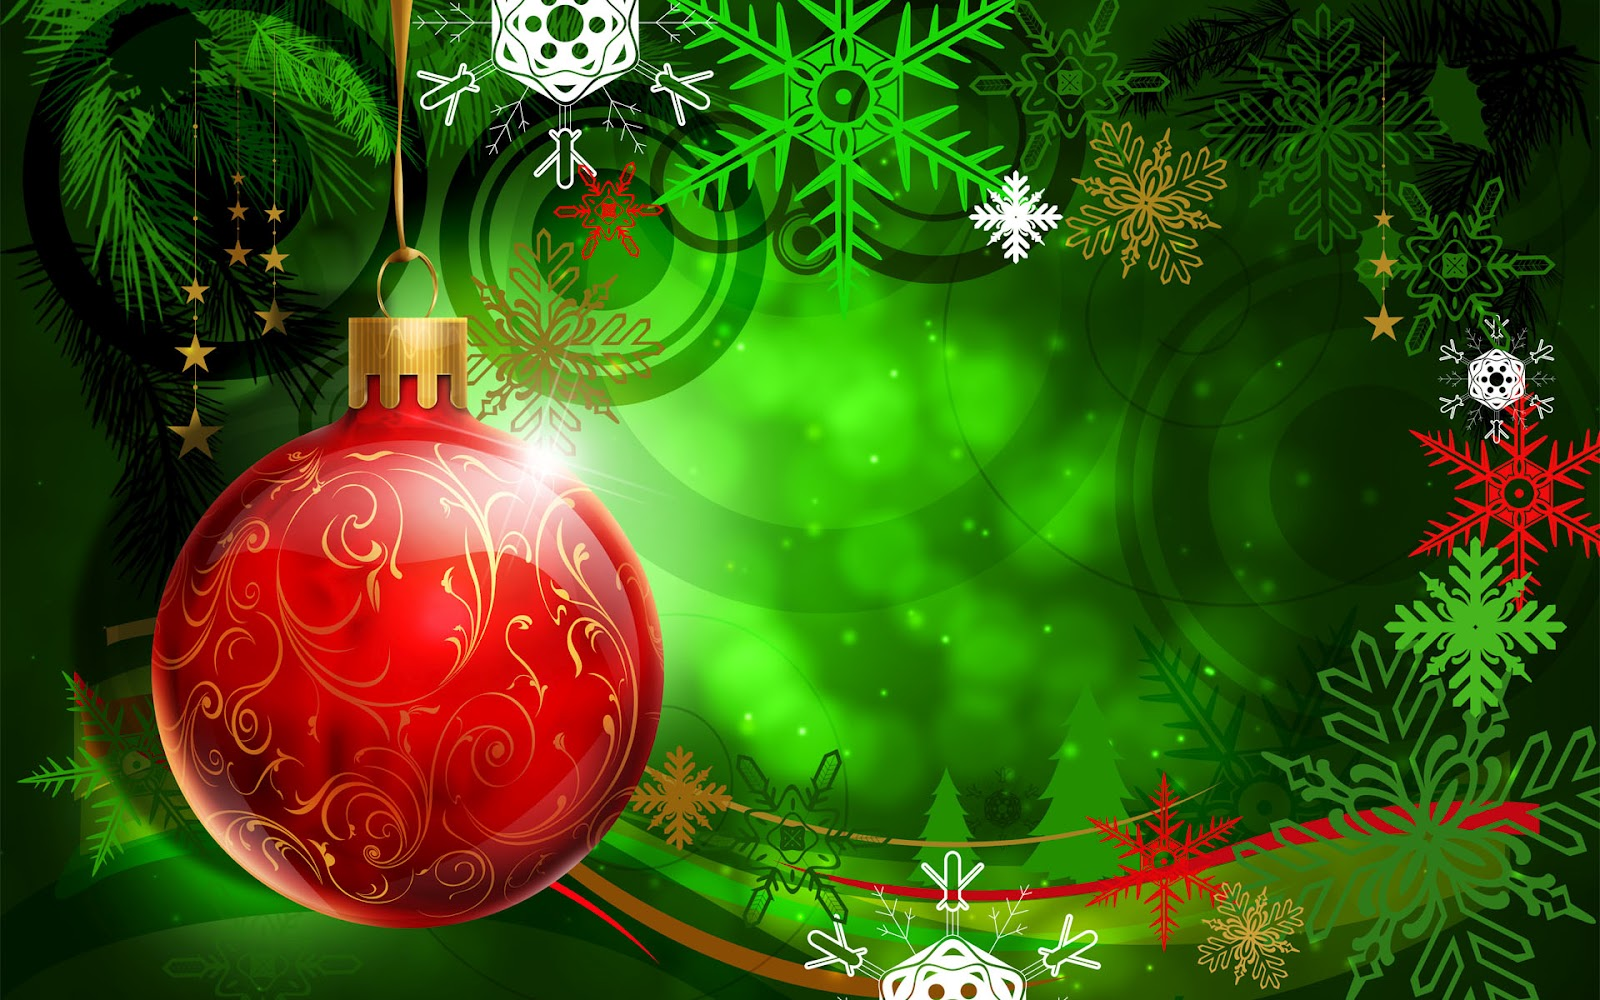 Christmas holiday wallpaper backgrounds   SF Wallpaper 1600x1000